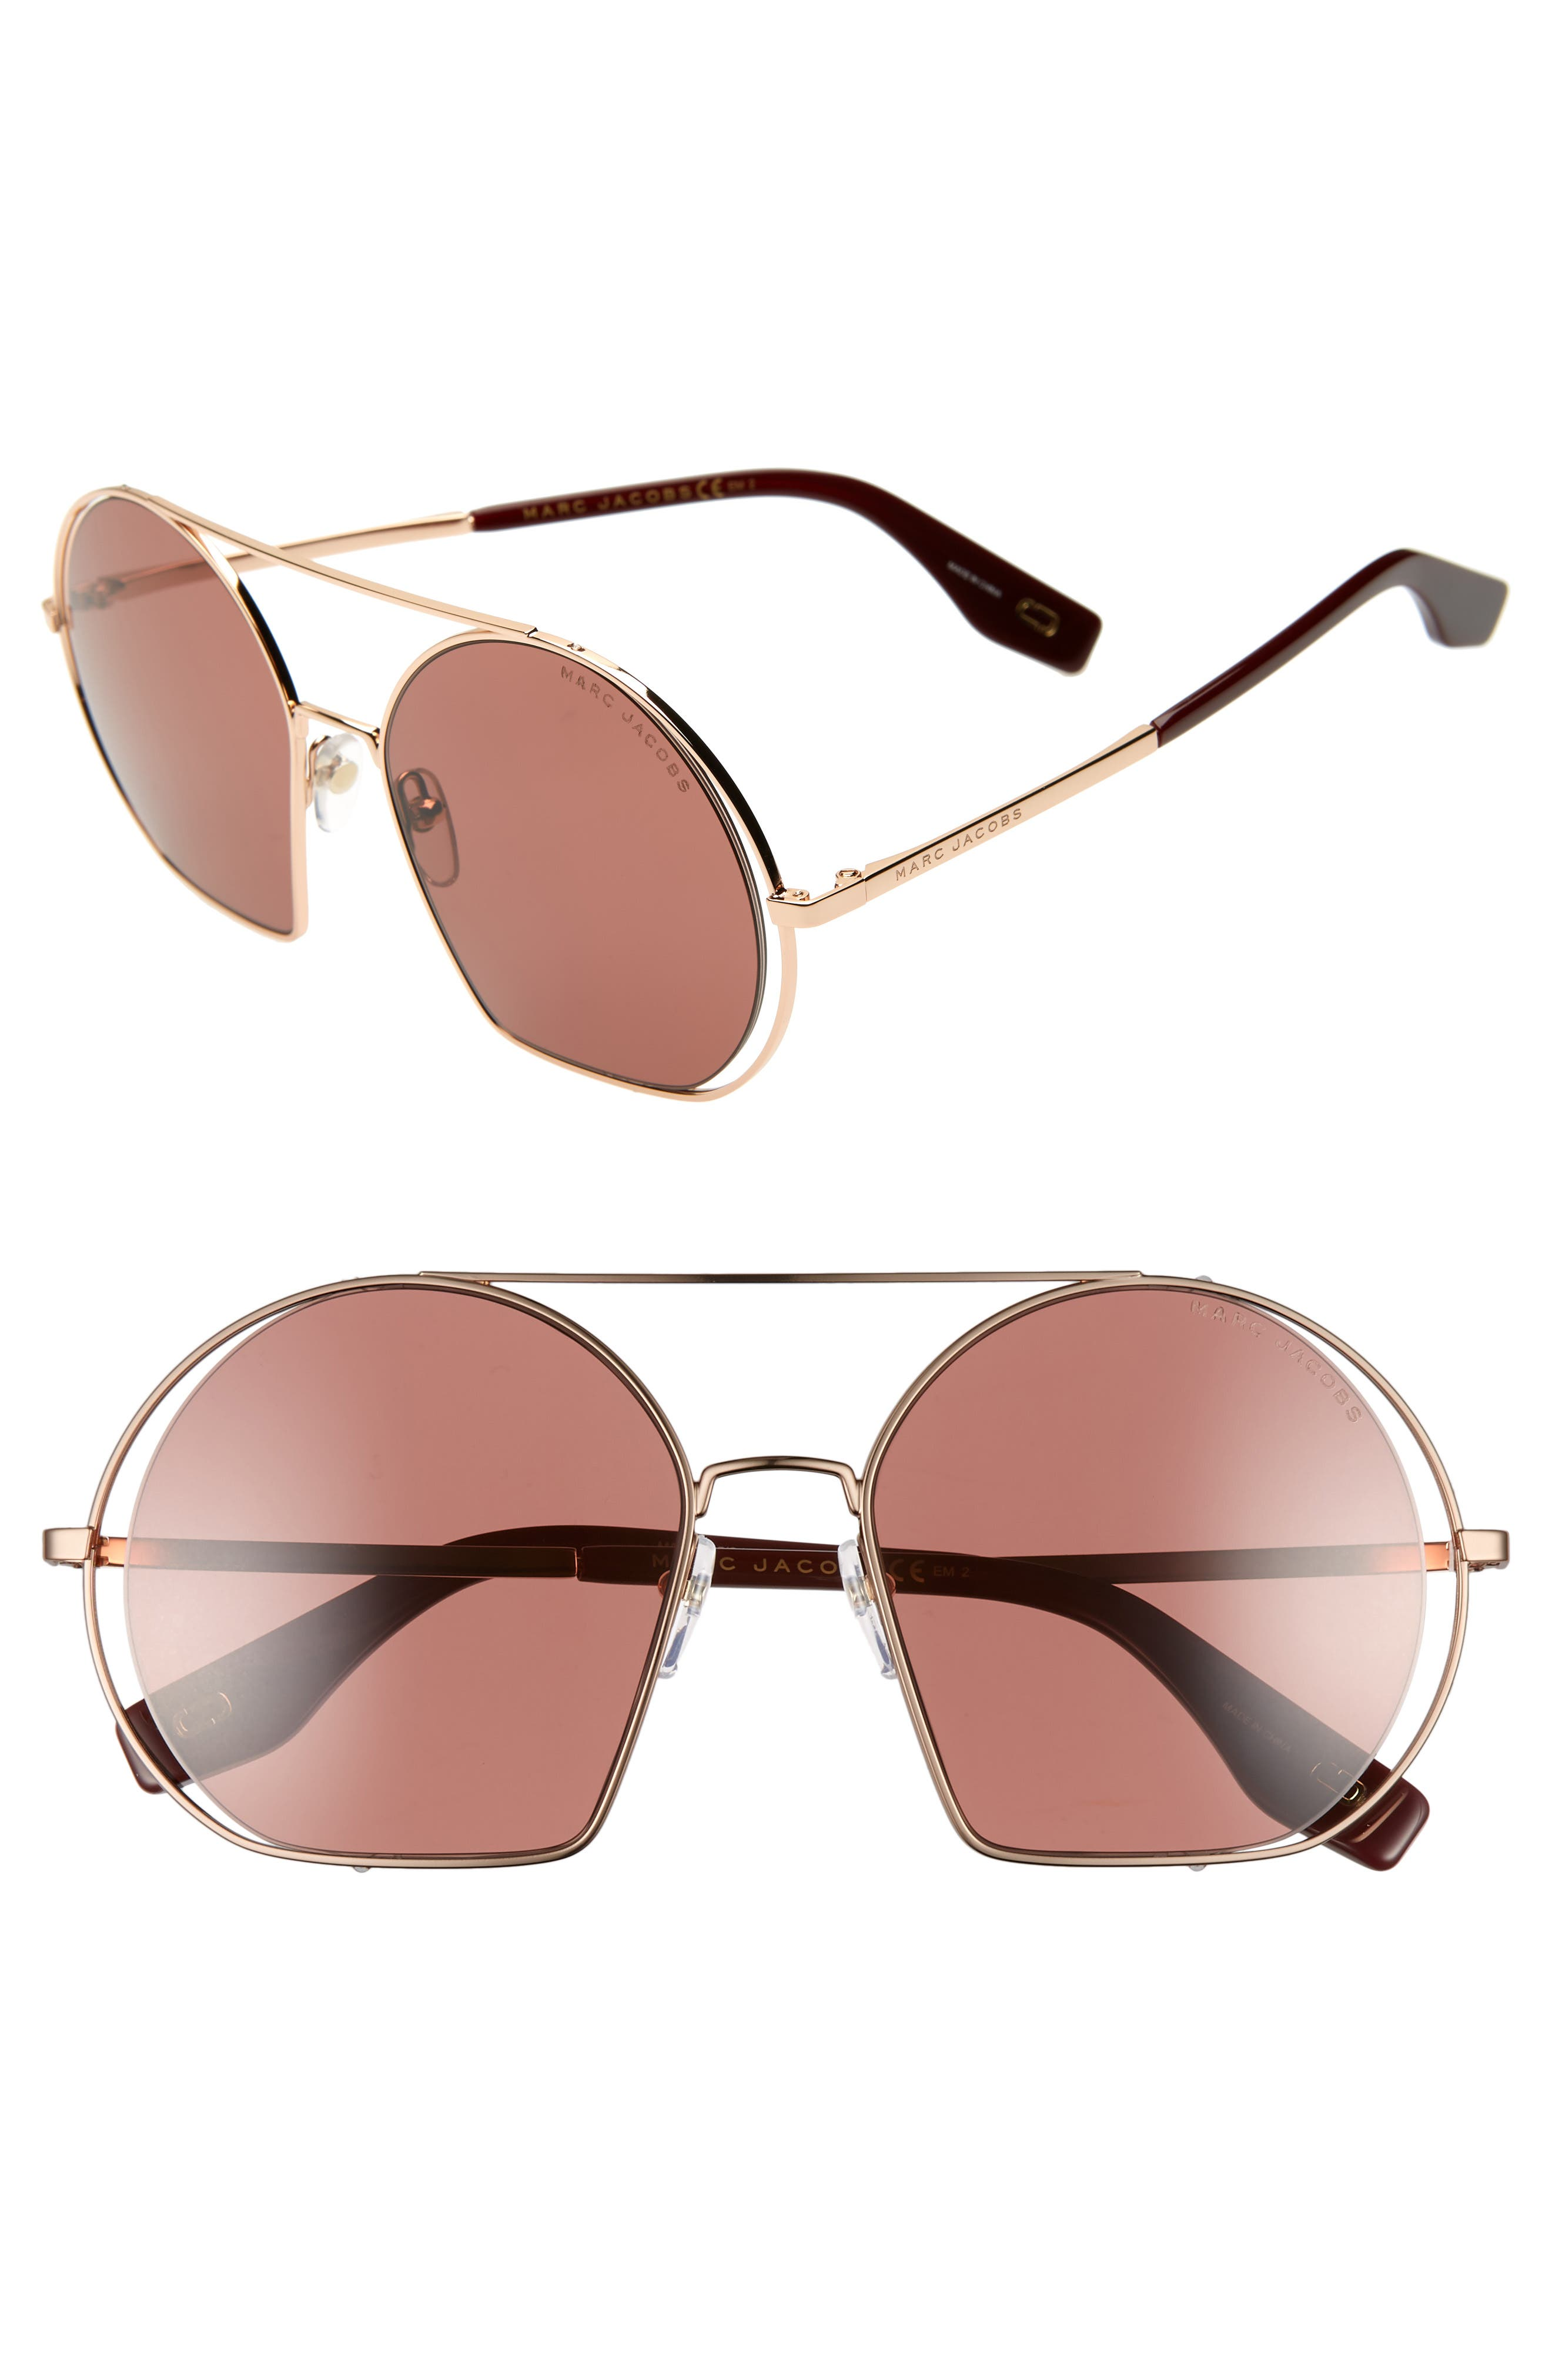 56mm Round Sunglasses,                             Main thumbnail 1, color,                             GOLD/ BURGUNDY